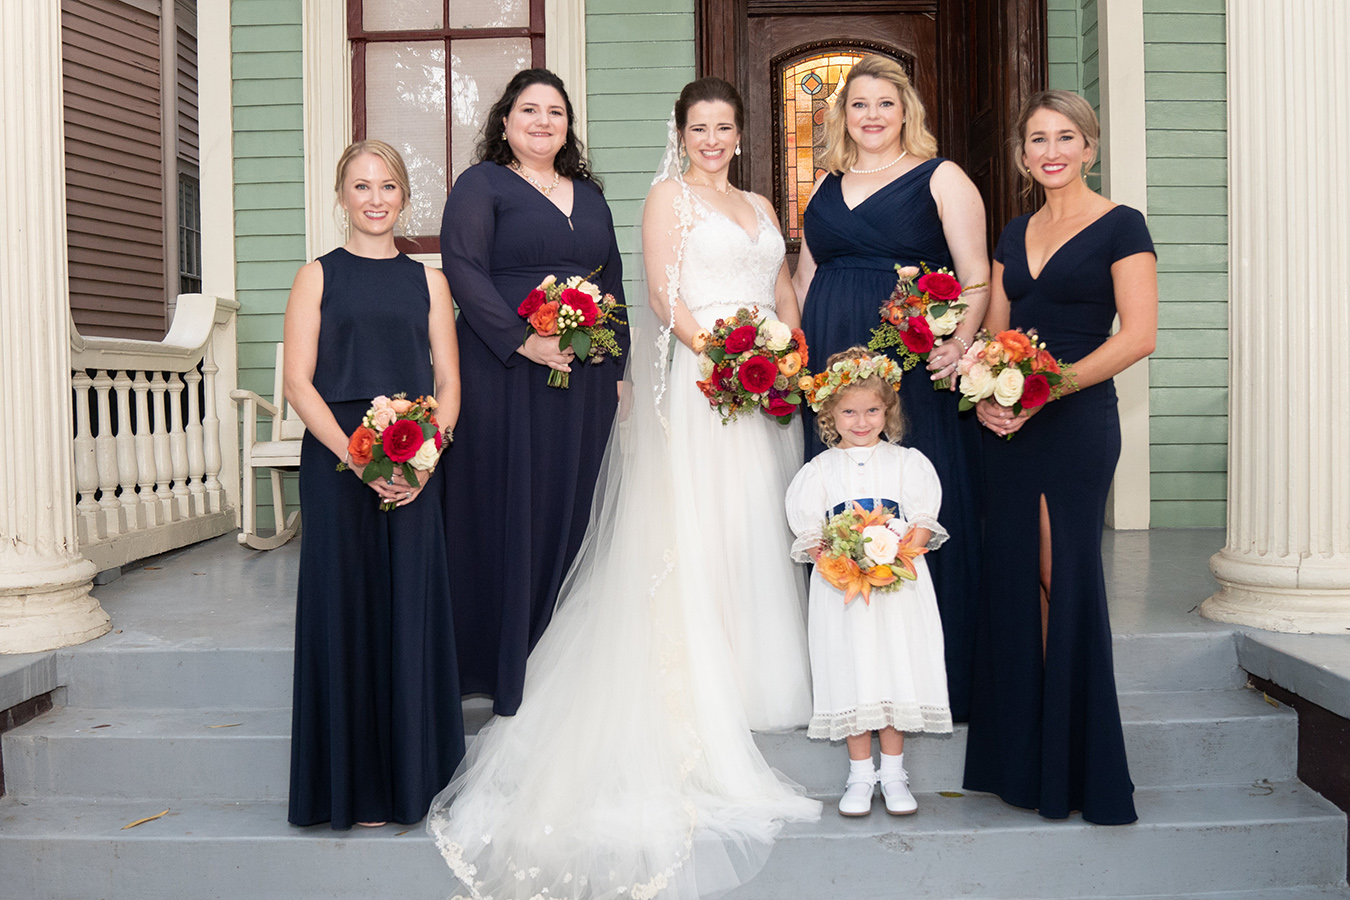 Margaret and her bridesmaids wore BHLDN gowns.